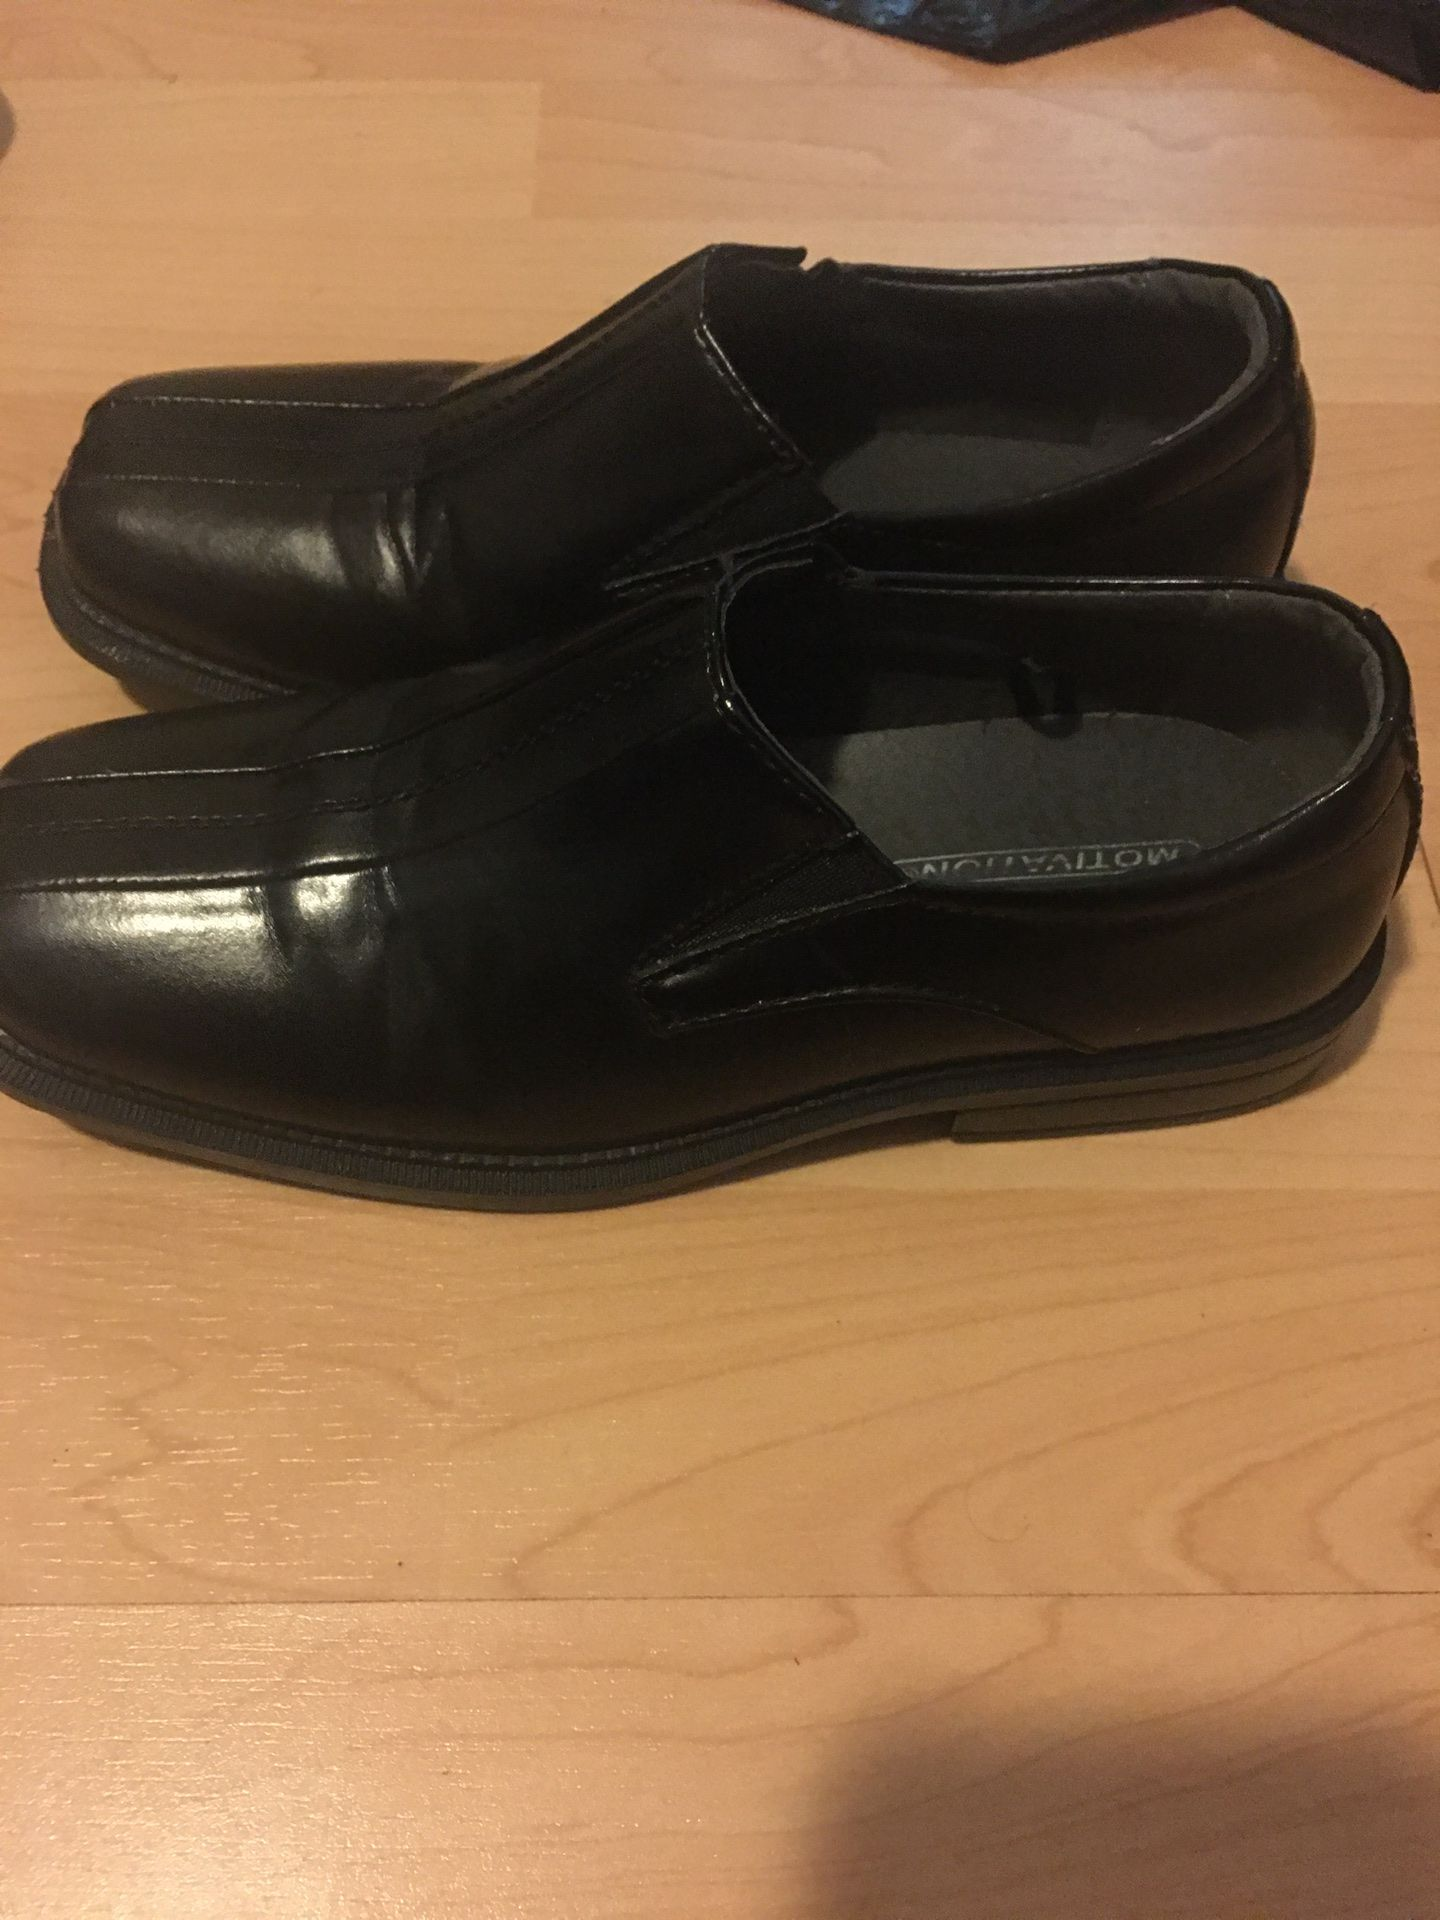 Deer stag boys dress shoes size 2